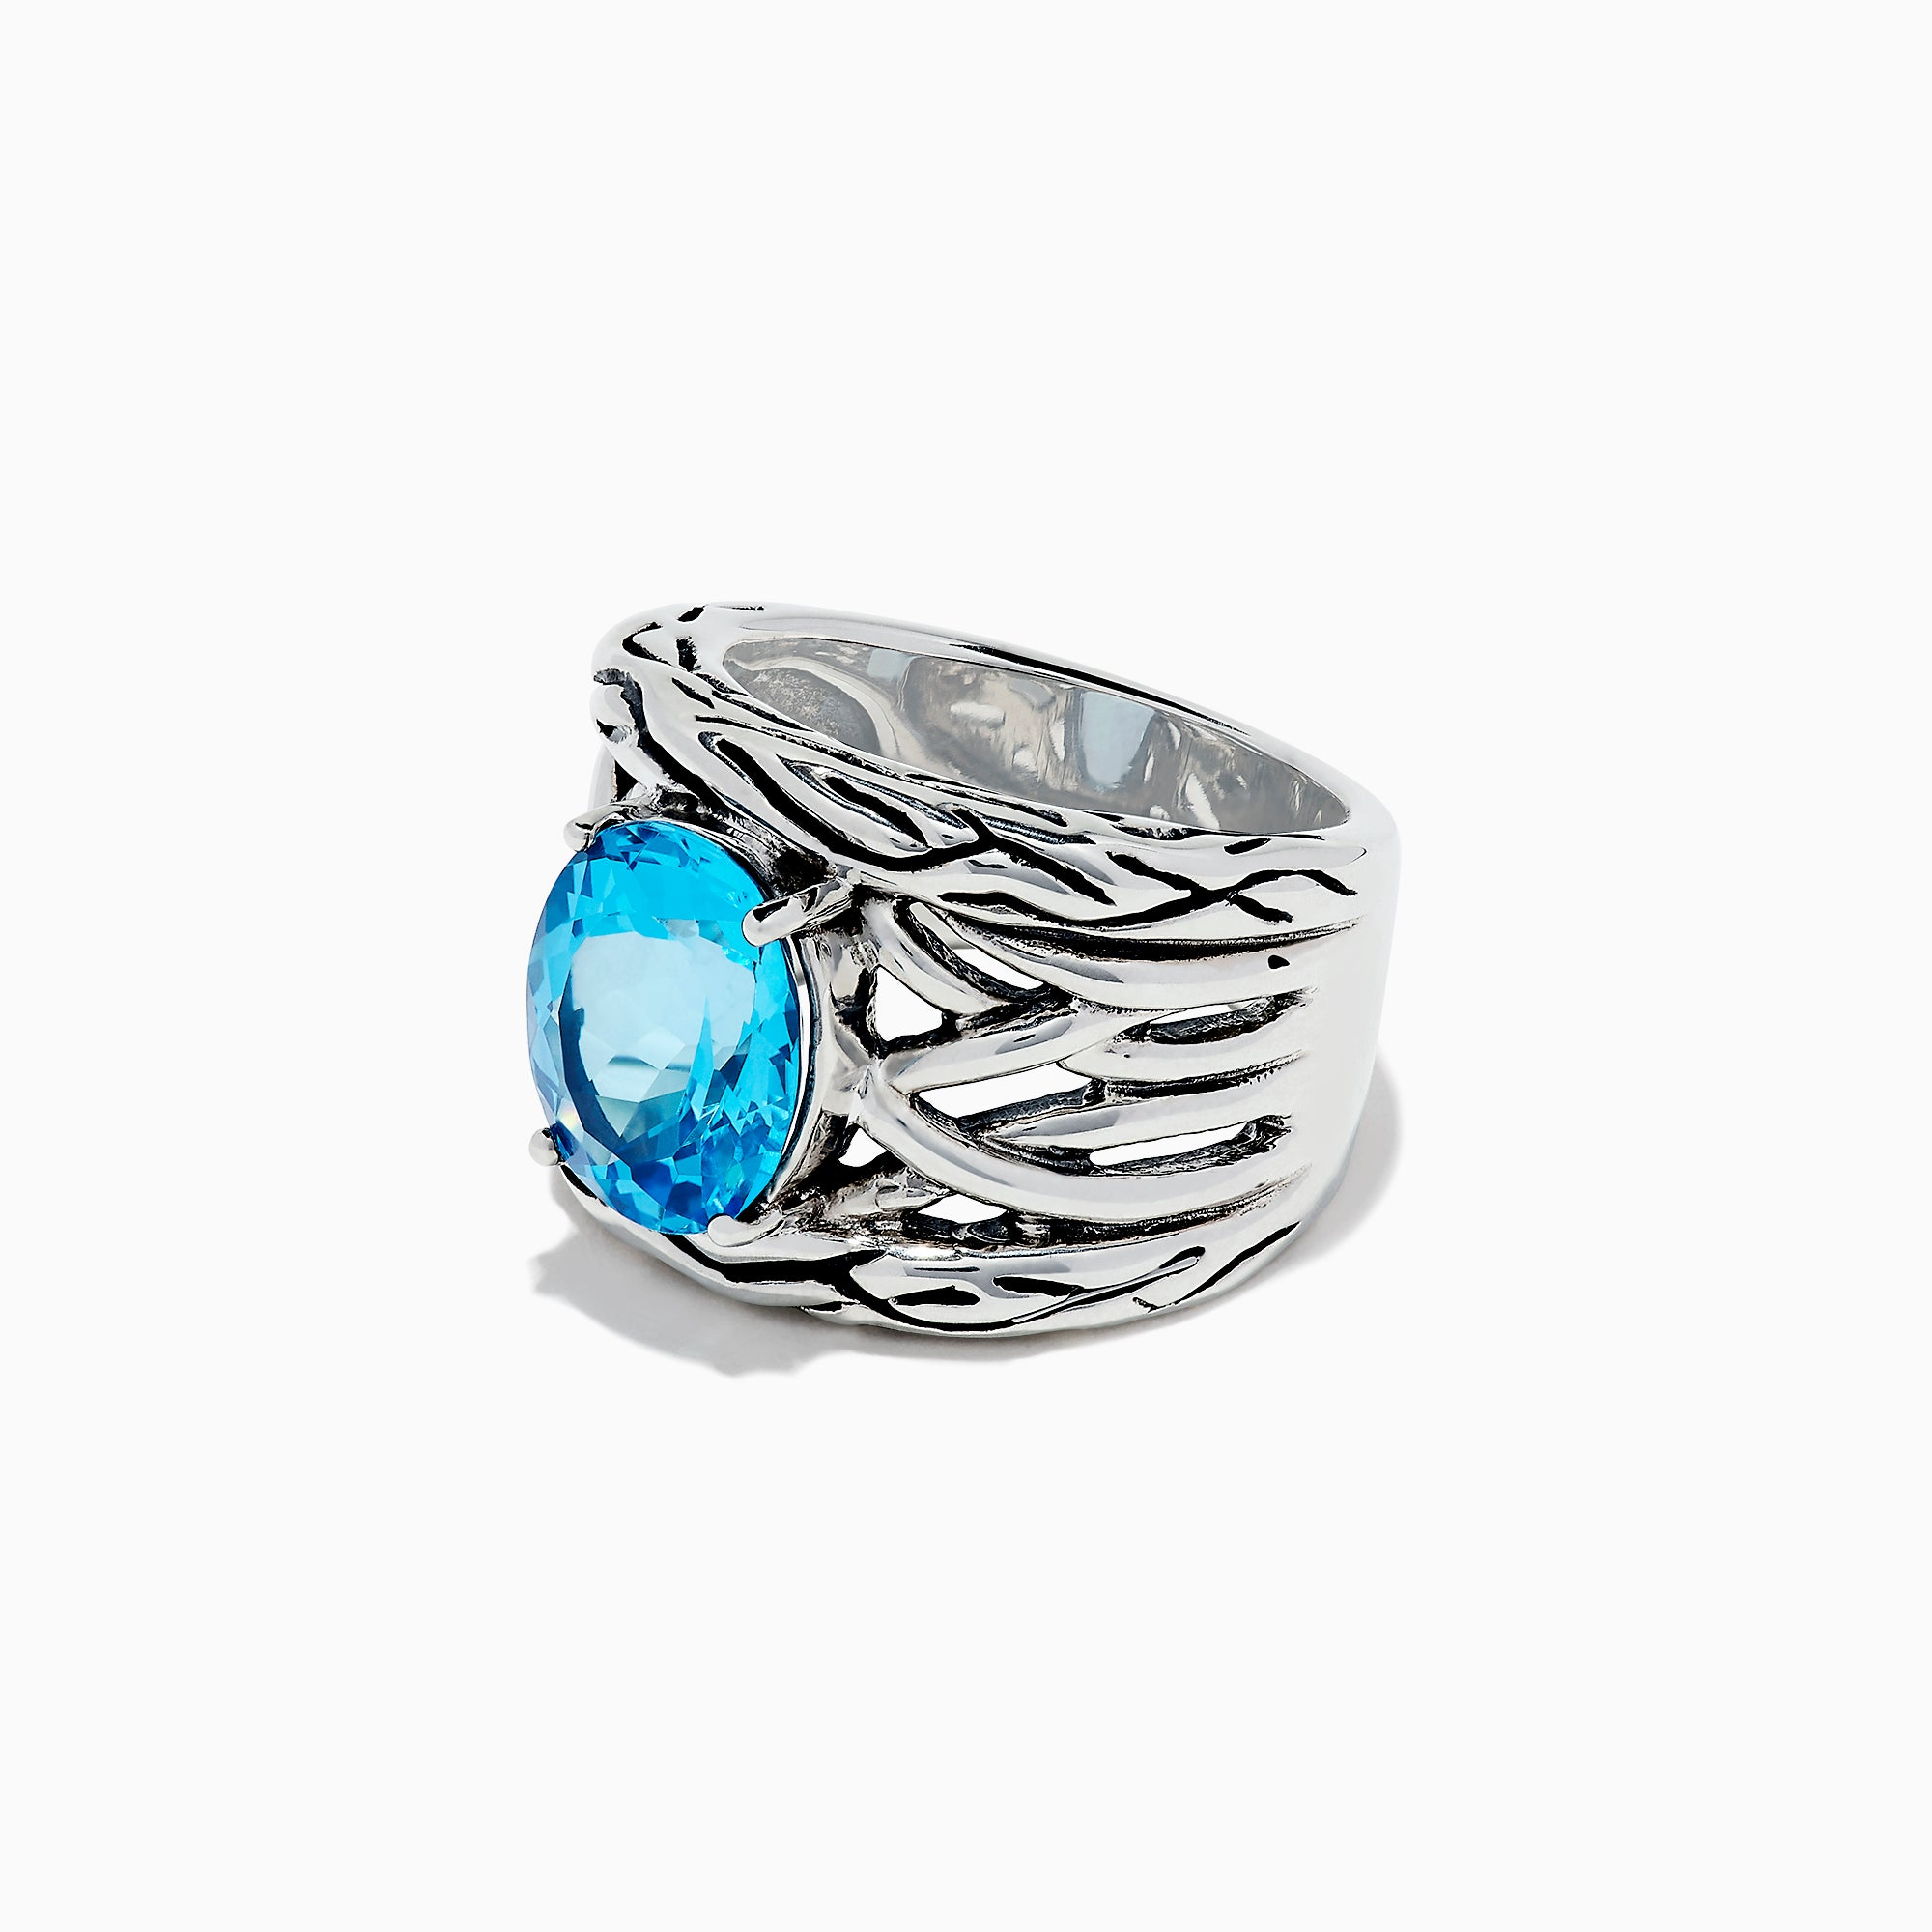 Effy 925 Lagoon Sterling Silver Blue Topaz Ring, 5.70 TCW